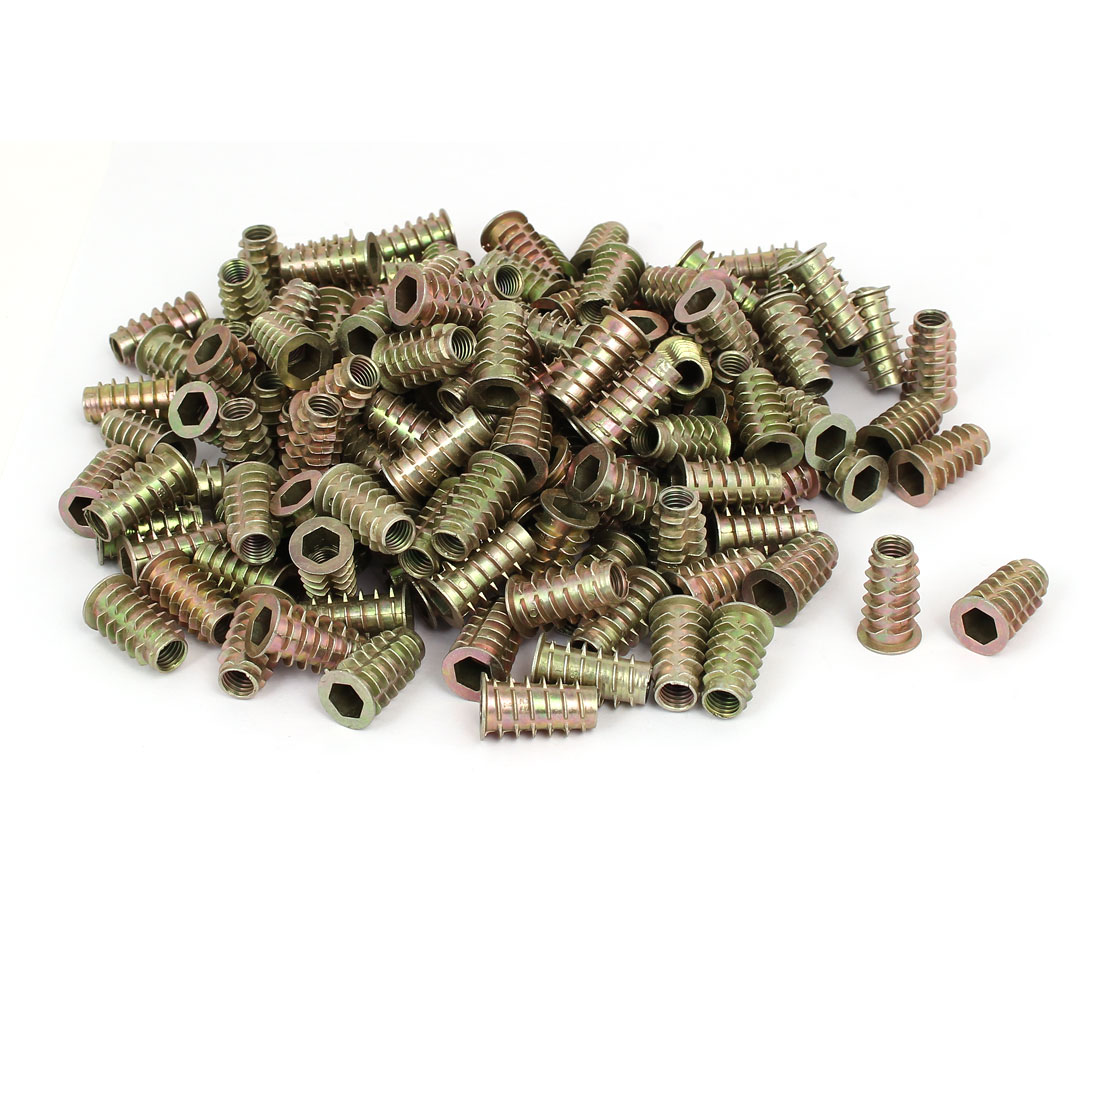 M8 x 25mm Hex Socket Head Insert Screws E-Nuts Furniture Fittings 200pcs